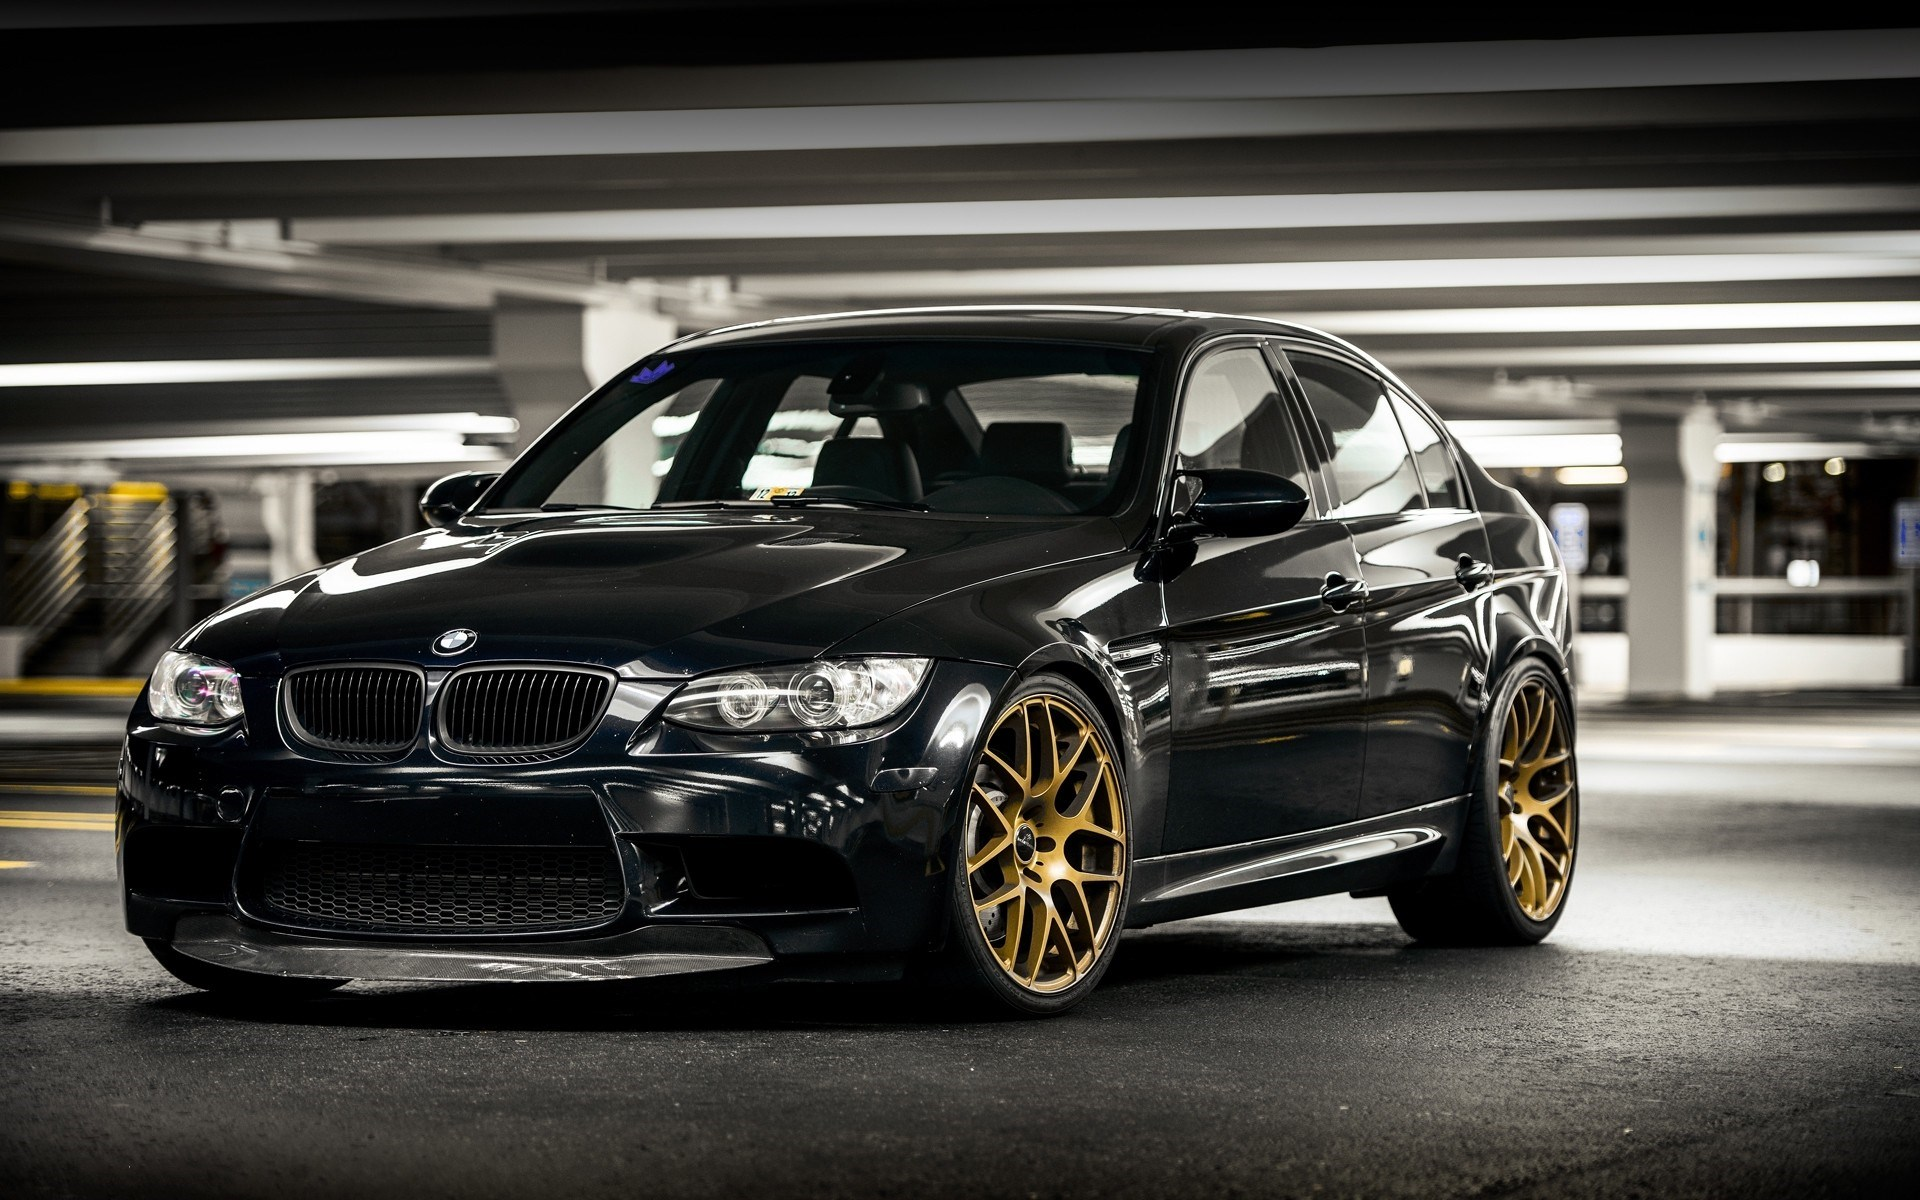 Bmw M3 E90 Parking Wallpaper 1920x1200 16165